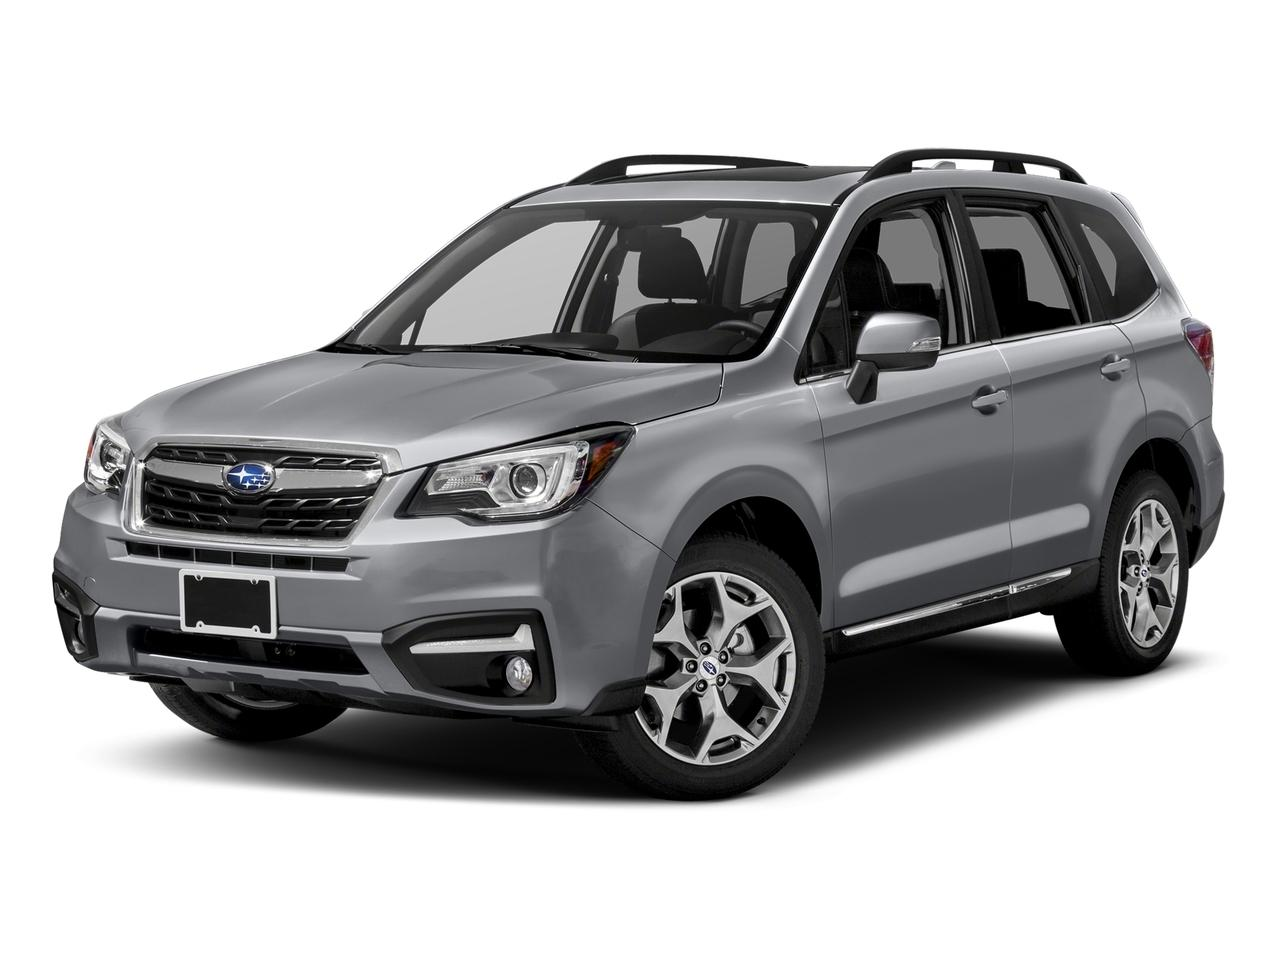 2017 Subaru Forester Vehicle Photo in Denton, MD 21629